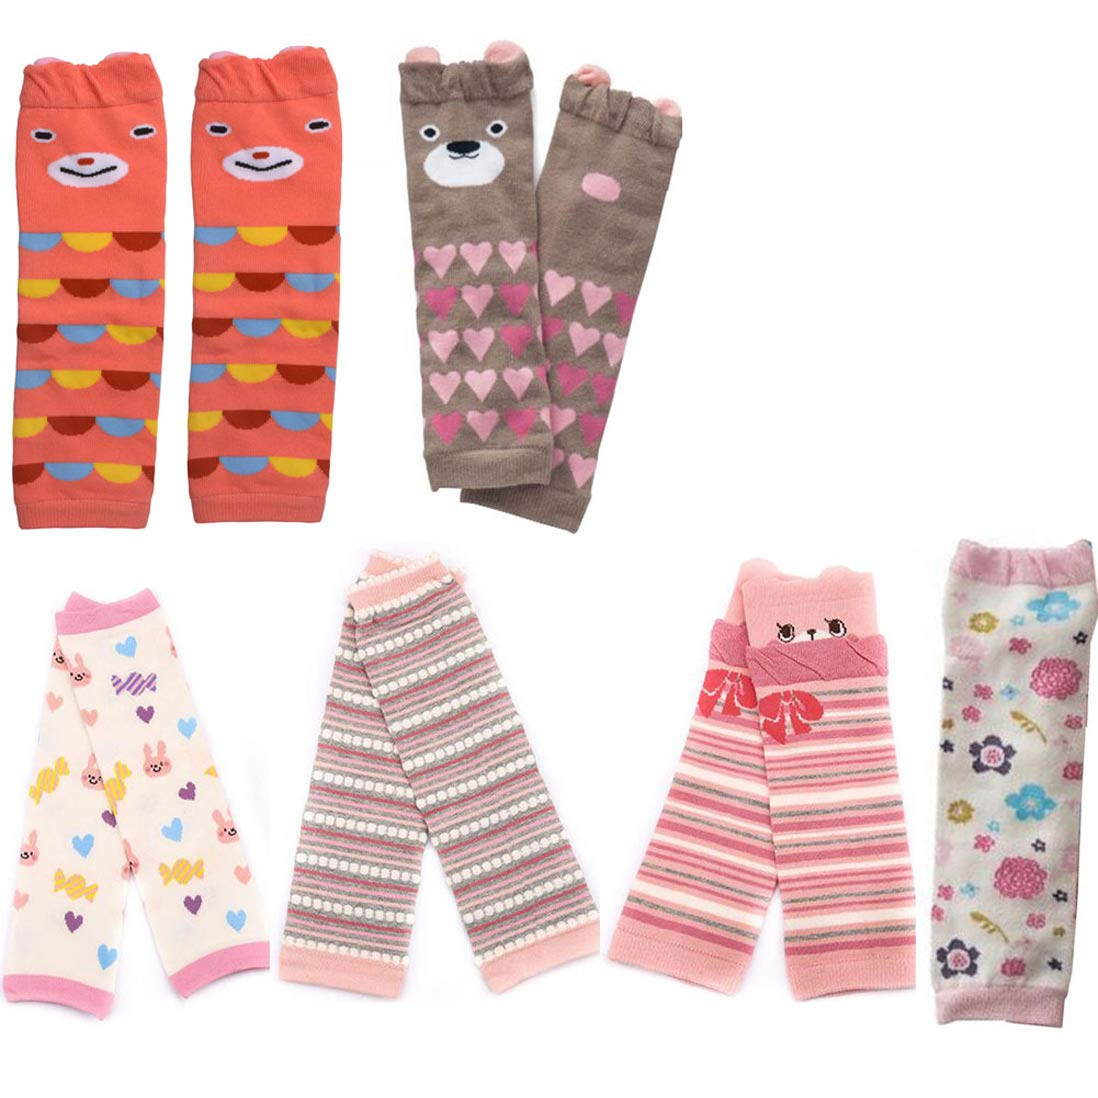 Lucky Staryuan 6-Pack Baby & Toddler Leg Warmers, Kneepads, Baby Shower Gifts (Girl Set)